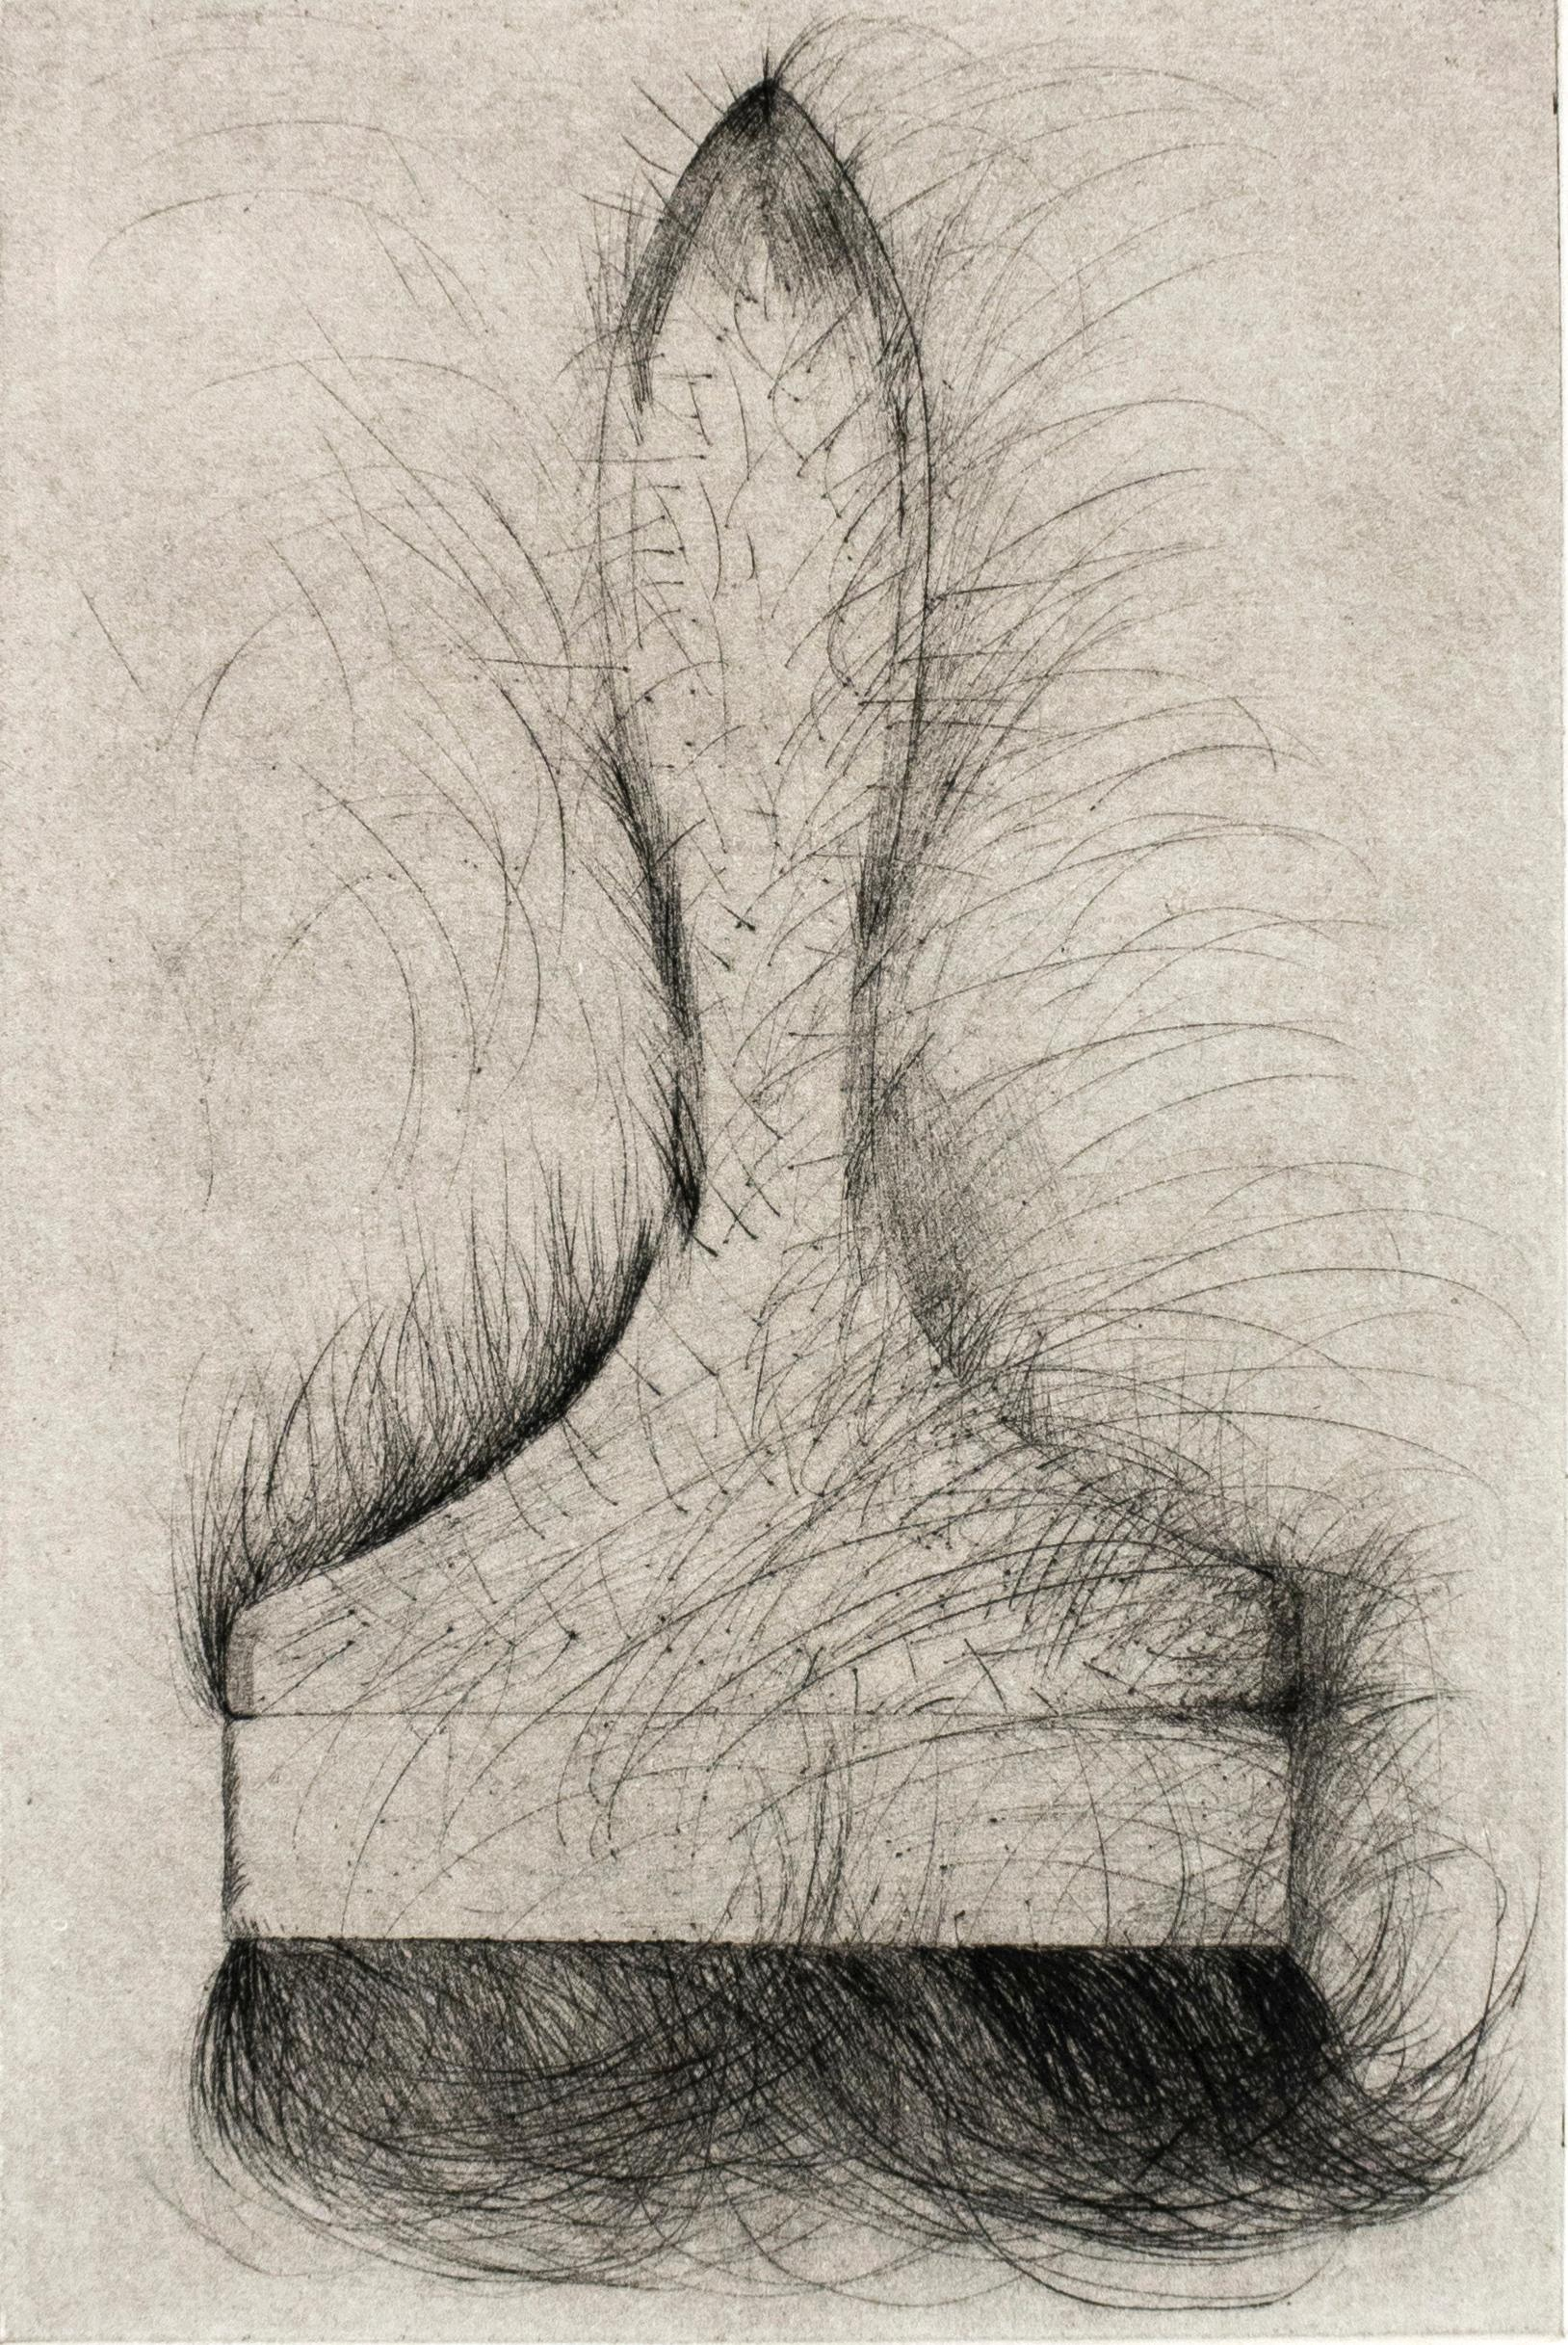 Tool Drypoint: Paintbrush by Jim Dine, black and white tool still life sketch